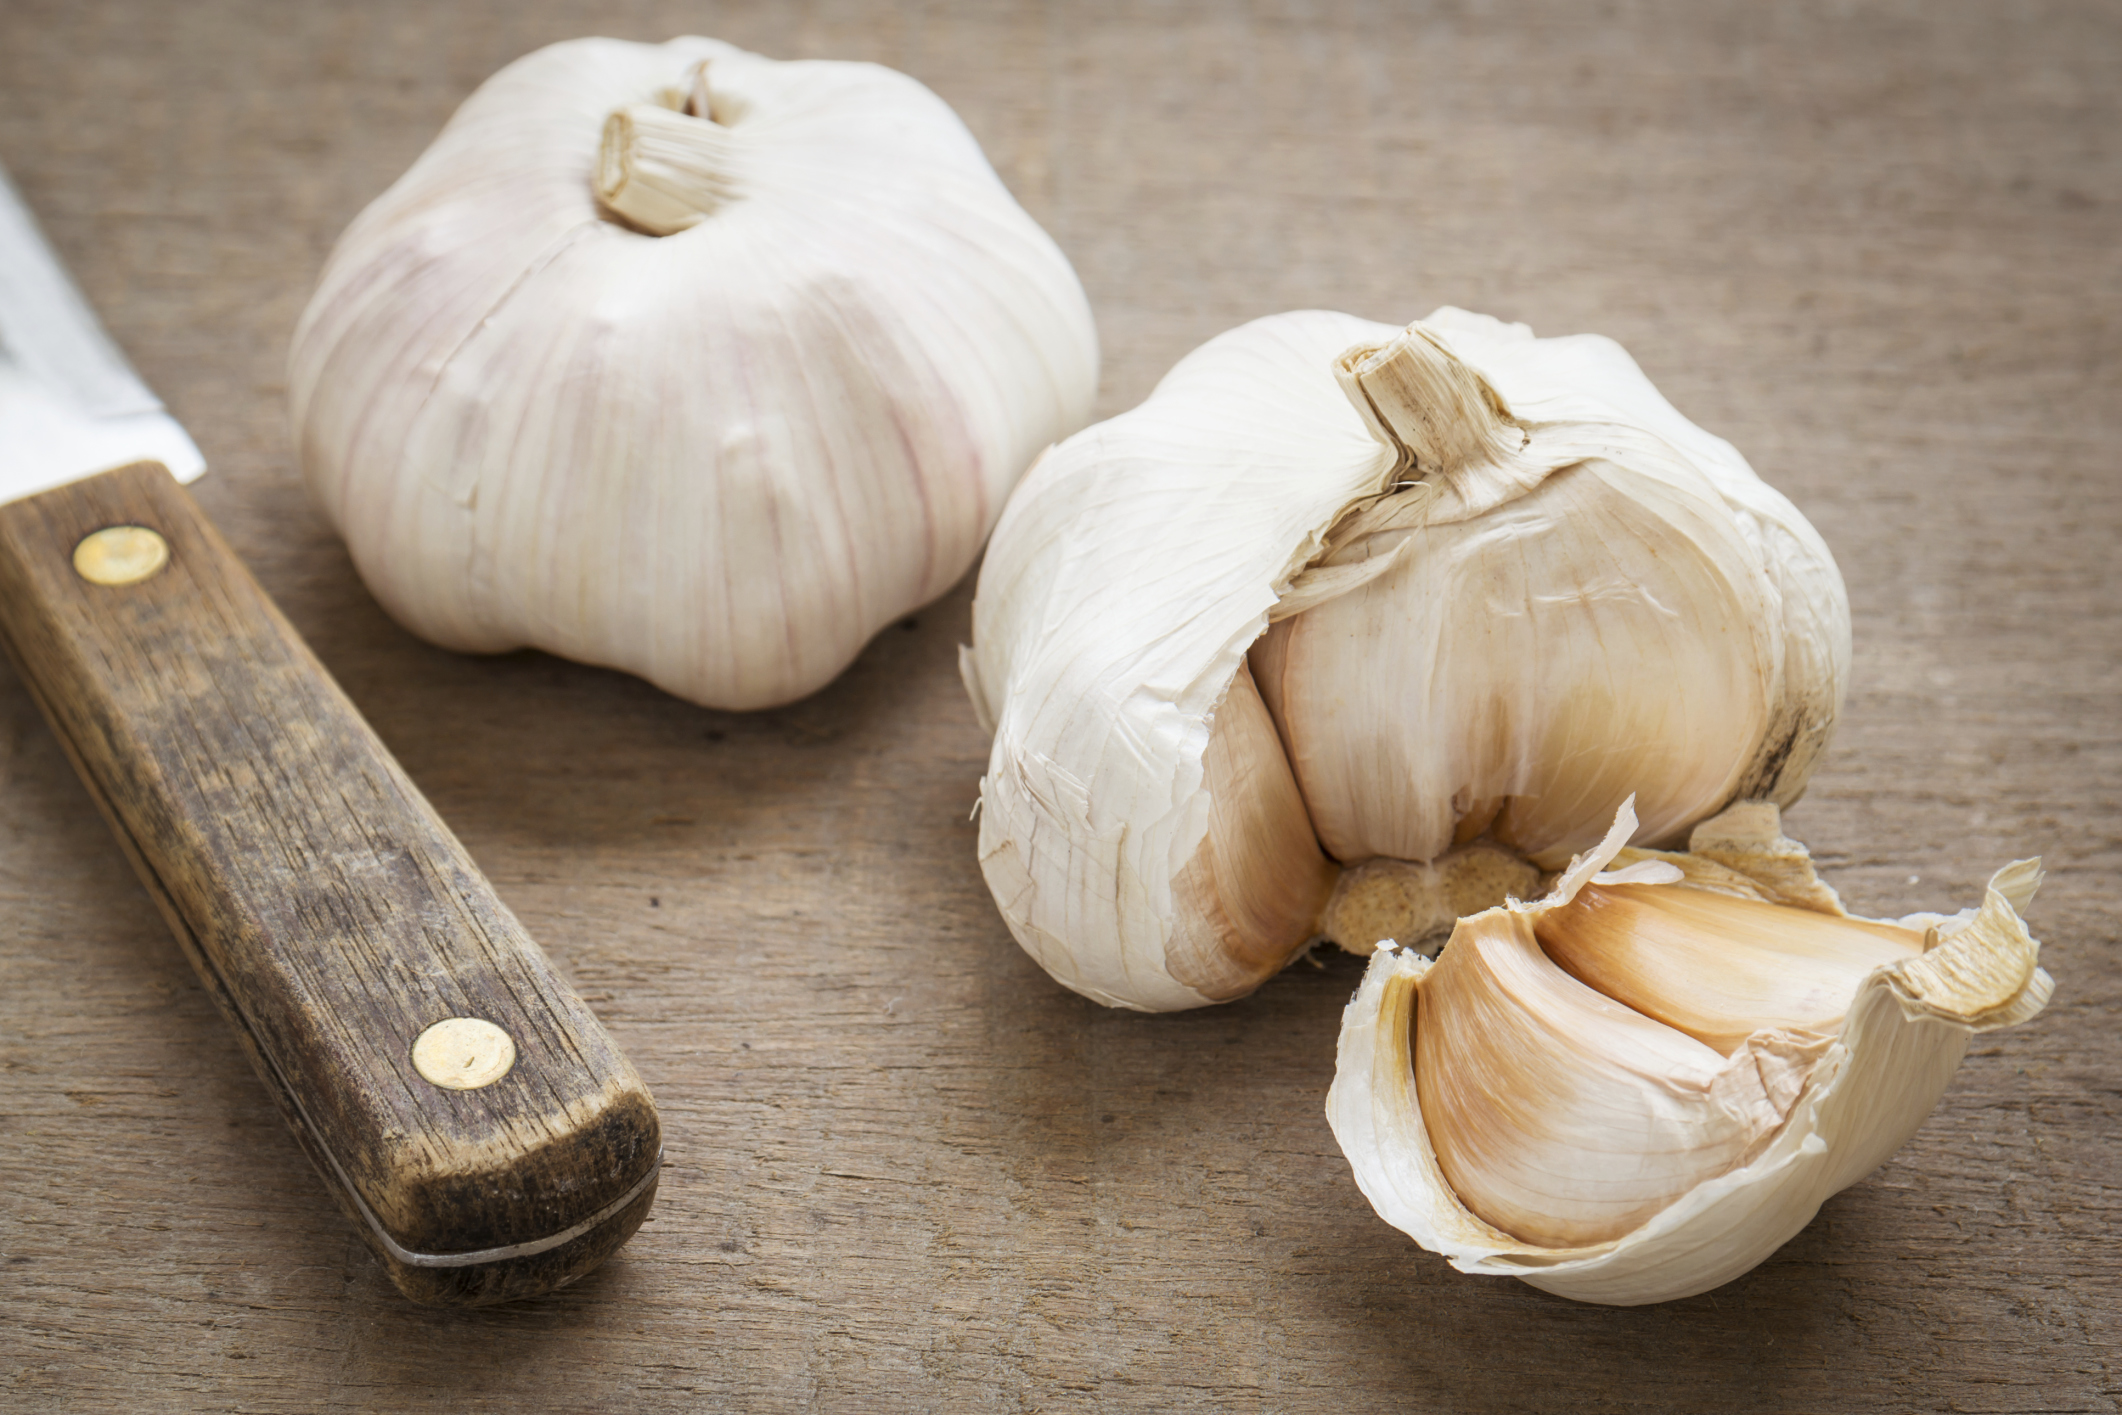 Than garlic is dangerous to humans